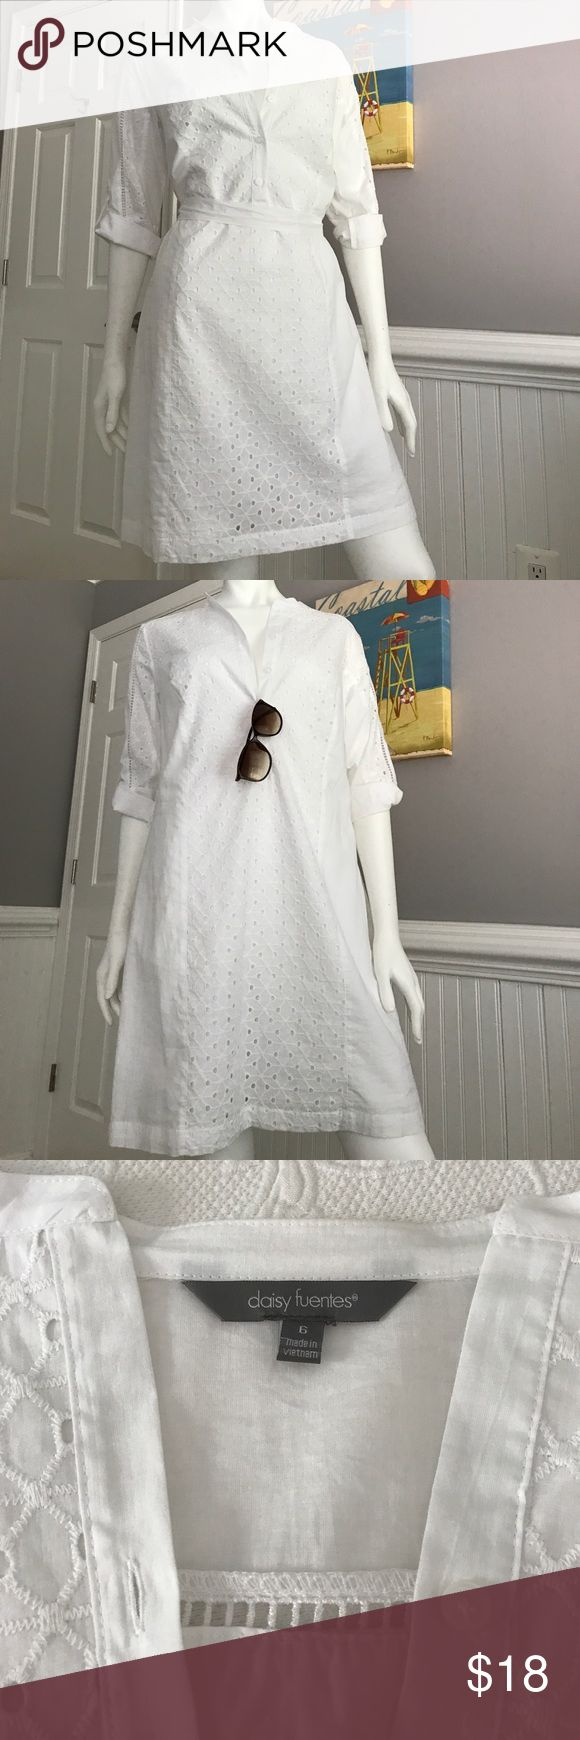 Chic Beach Dress/ Resort Wear Perfect Resort wear! Chic Beach cover up @ daytime , then throw on a belt and cute flat & voila! - perfect for dinner or drinks! Crisp white with lovely crochet/ eyelet detail. New- never worn & immaculate. Size 6. Comes with a white cloth belt ( brown belt not included) L 35 pit 2 pit 22 Daisy Fuentes Dresses